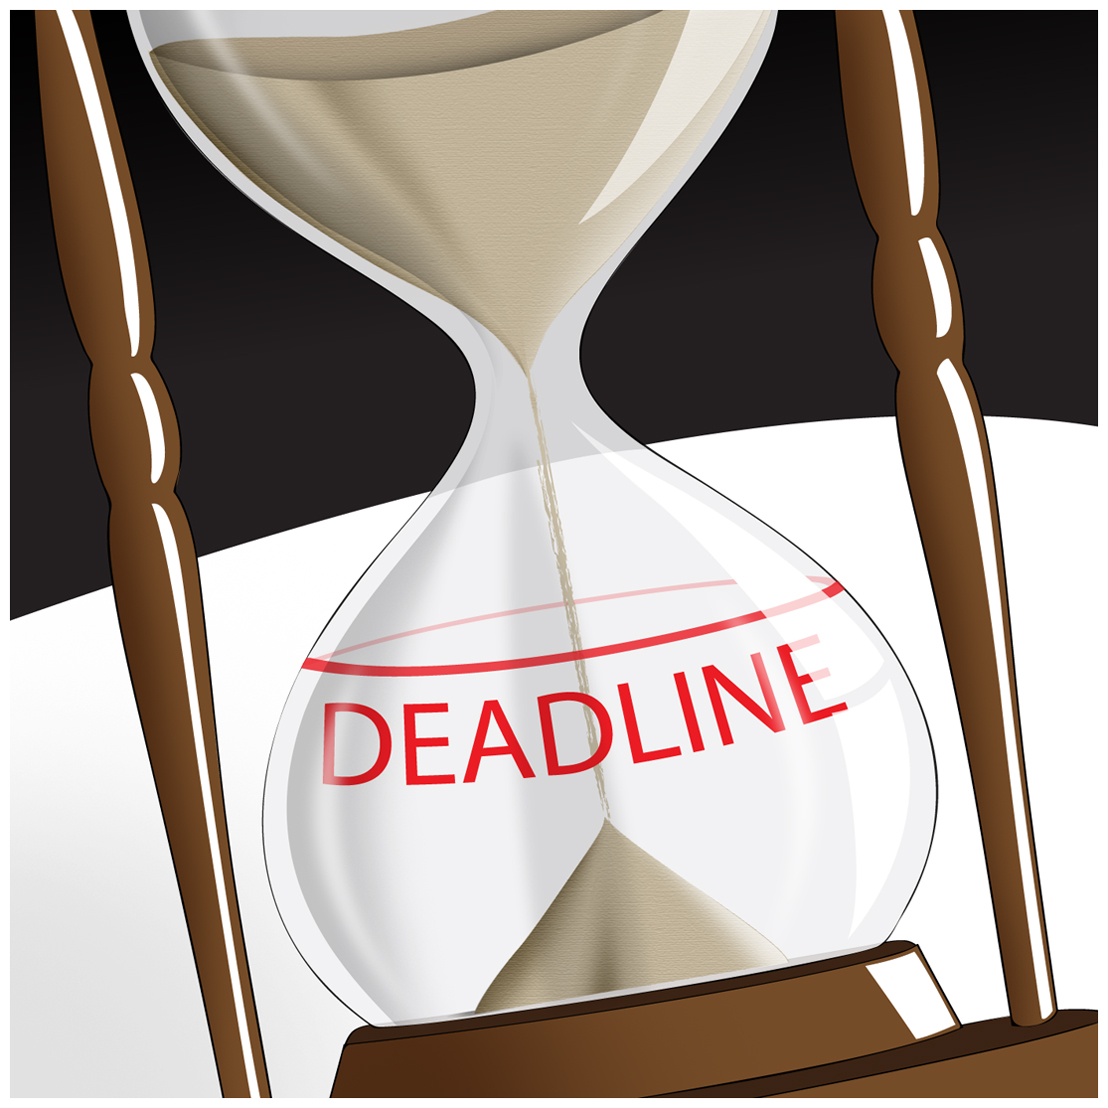 The Late Summer Creative Writing Contest Is Ending Soon